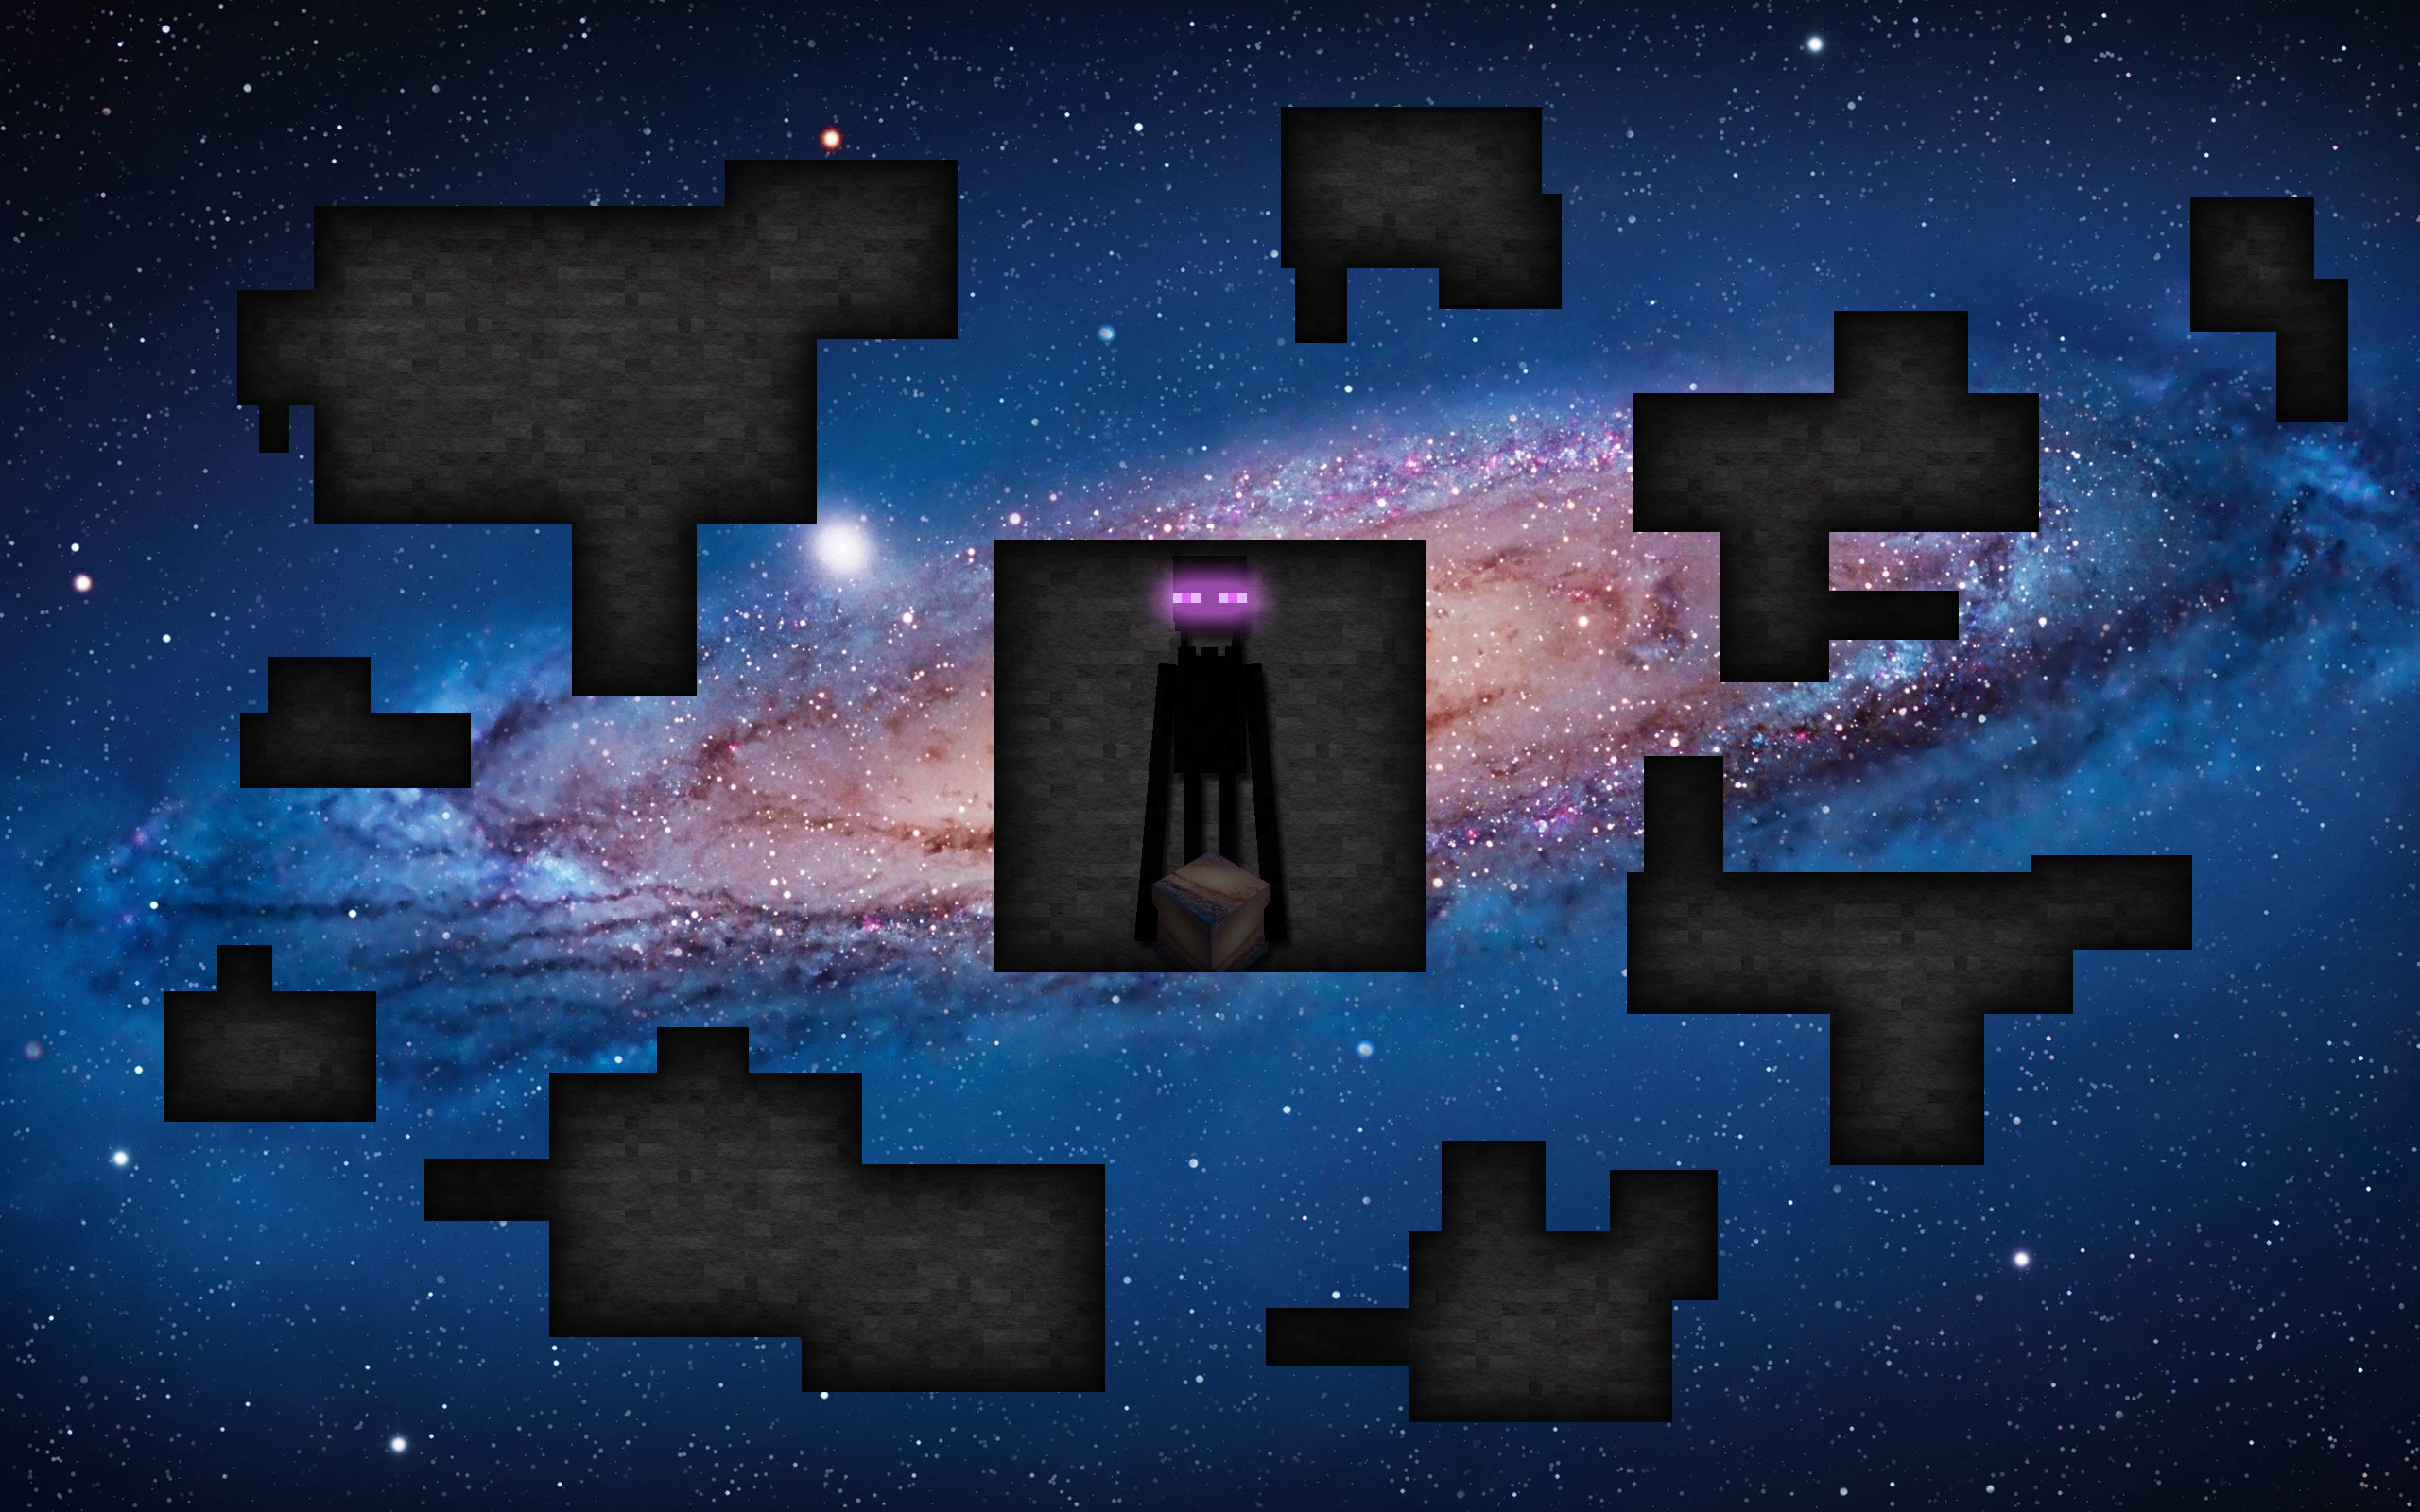 Res: 2560x1600, Minecraft Enderman Wallpaper by adscomics Minecraft Enderman Wallpaper by  adscomics